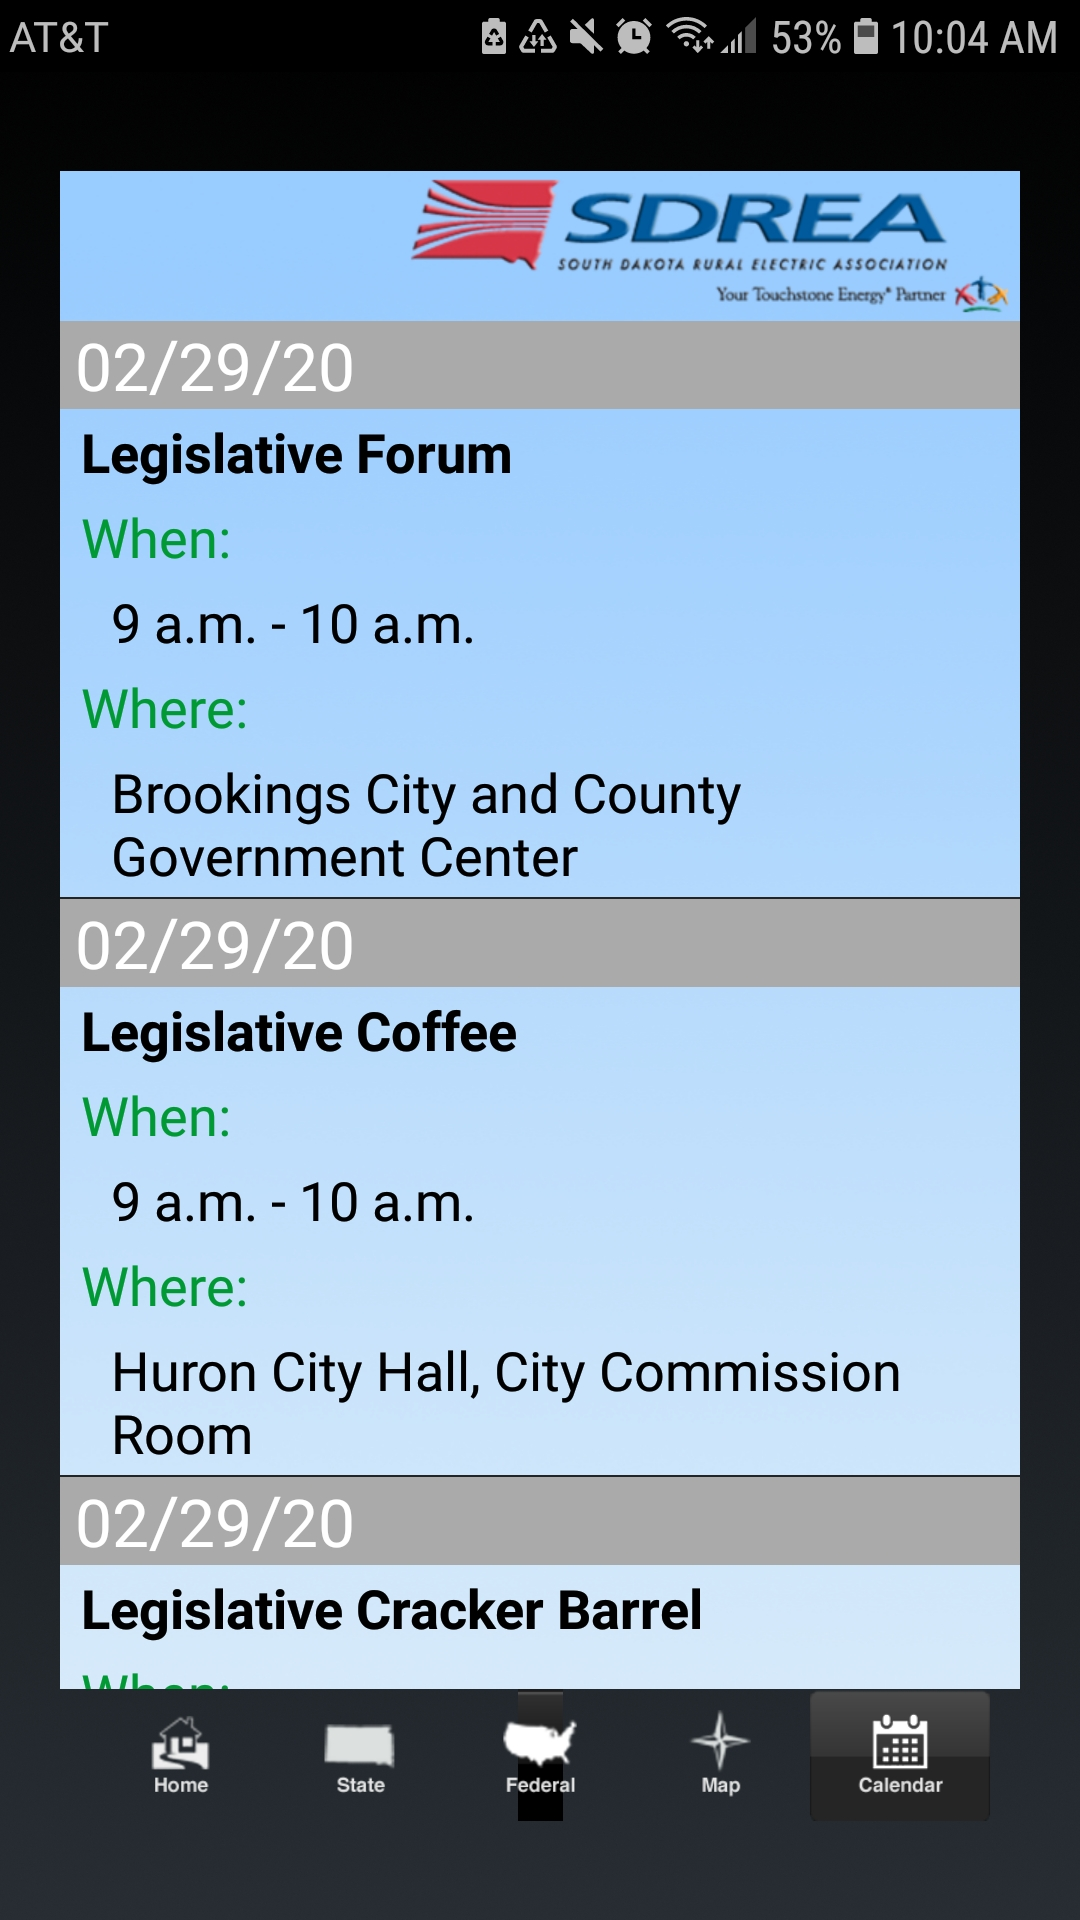 Picture of Legislative Mobile App calendar feature